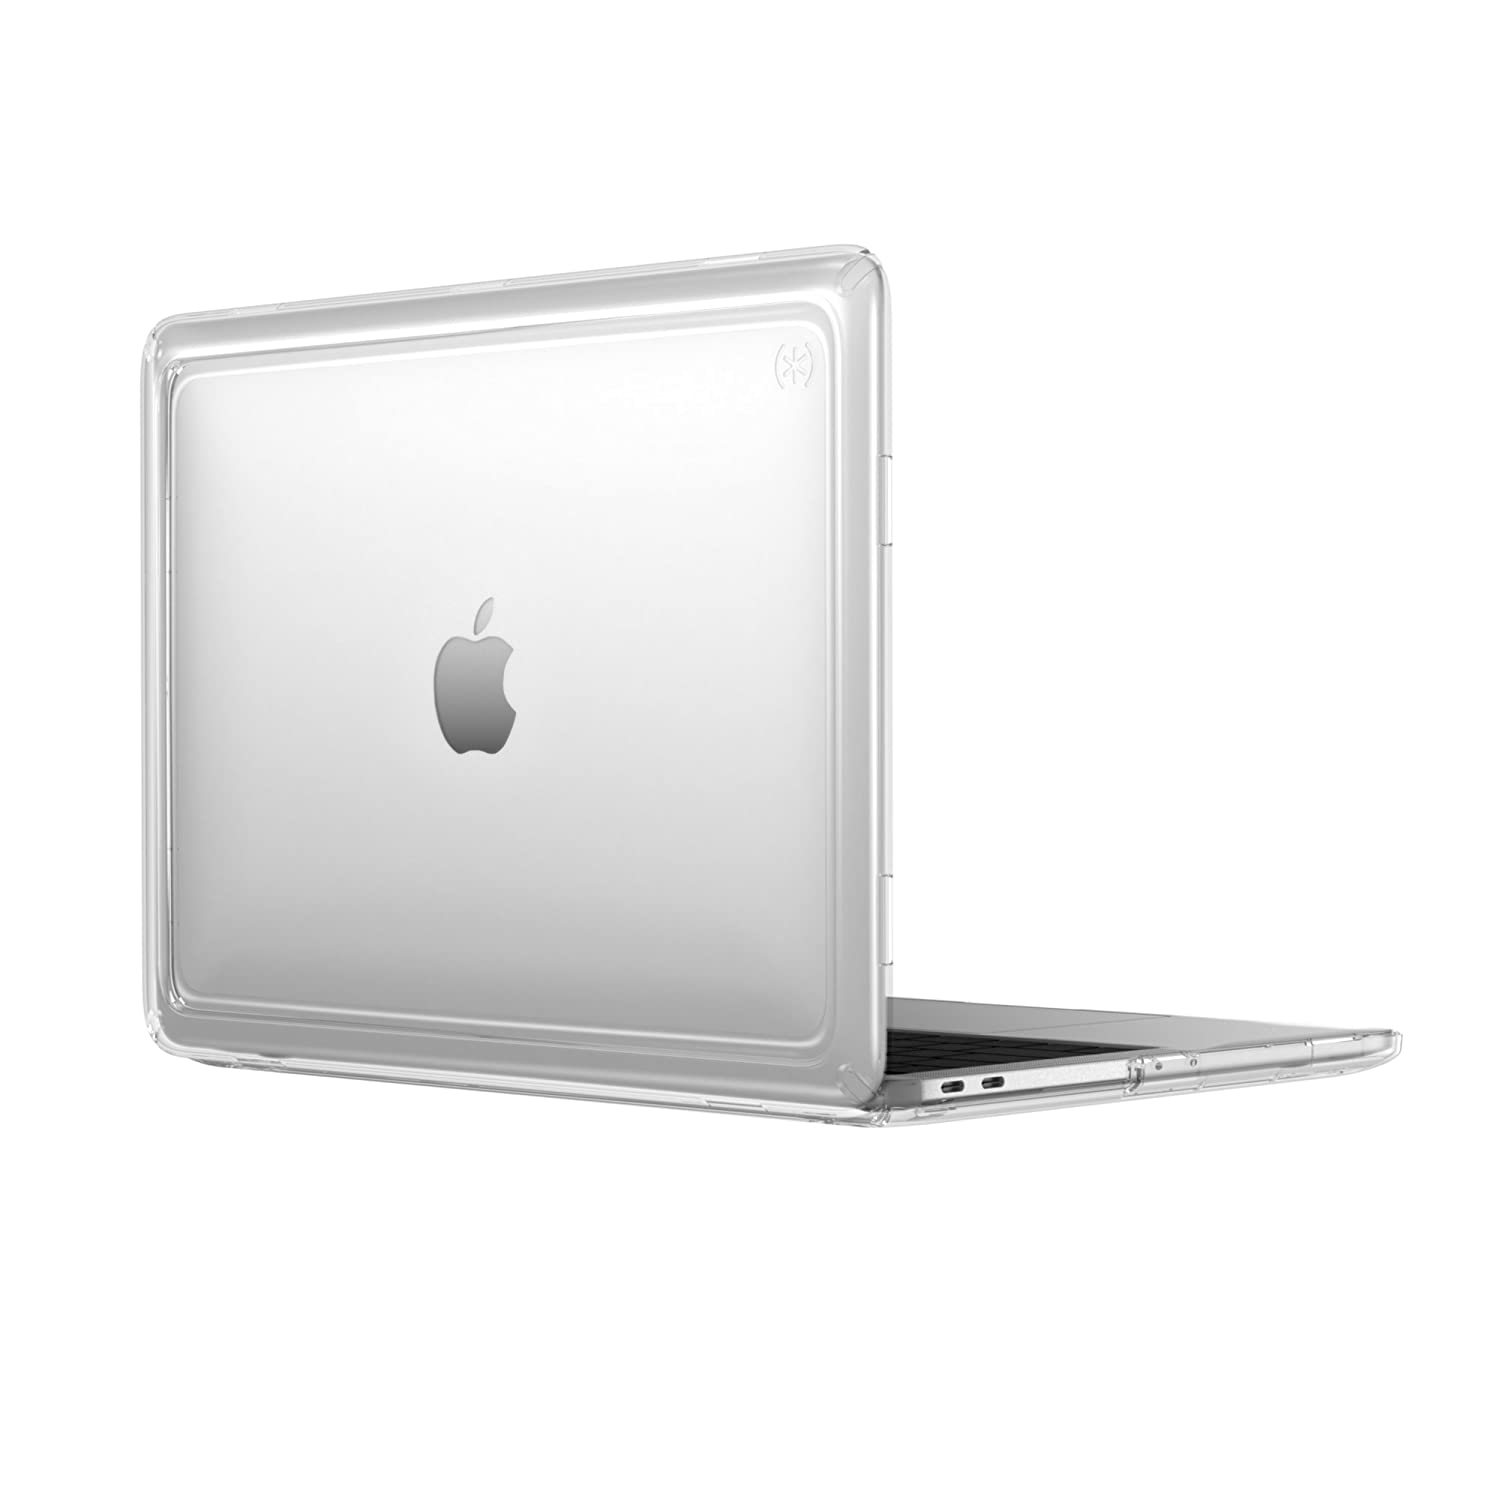 "Speck 13"" Macbook Pro w/without Touch Bar Presidio Clear Case, IMPACTIUM 4-Foot Drop Protected Macbook Case that Resists UV Yellowing with On-The-Go Protection, Clear"